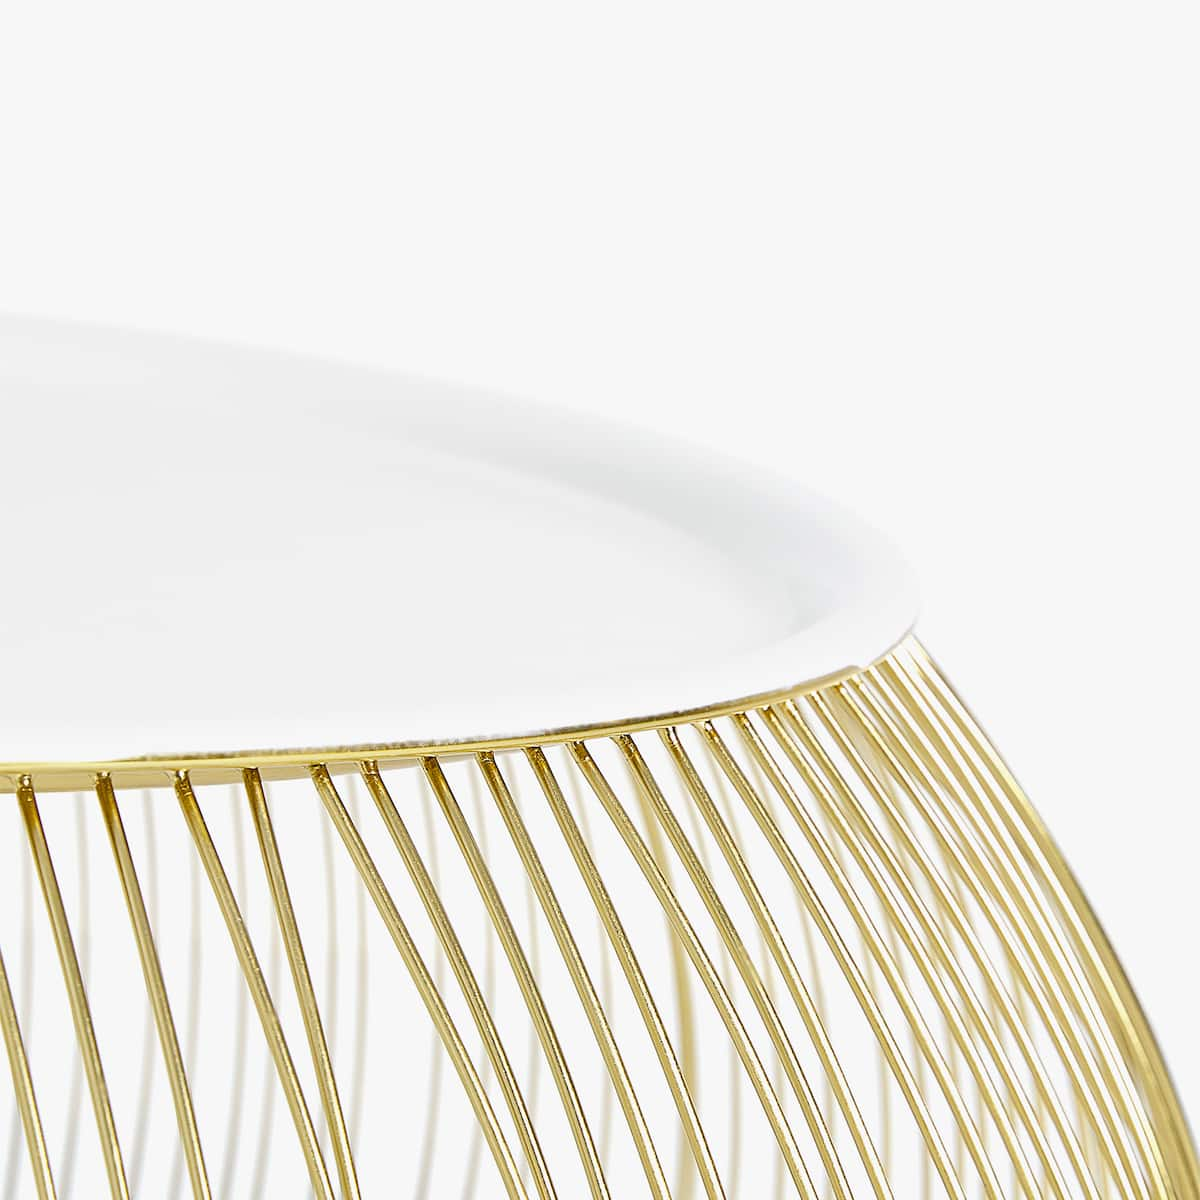 Gold wire iron side table furniture decoration zara home image 3 of the product gold wire iron side table greentooth Choice Image